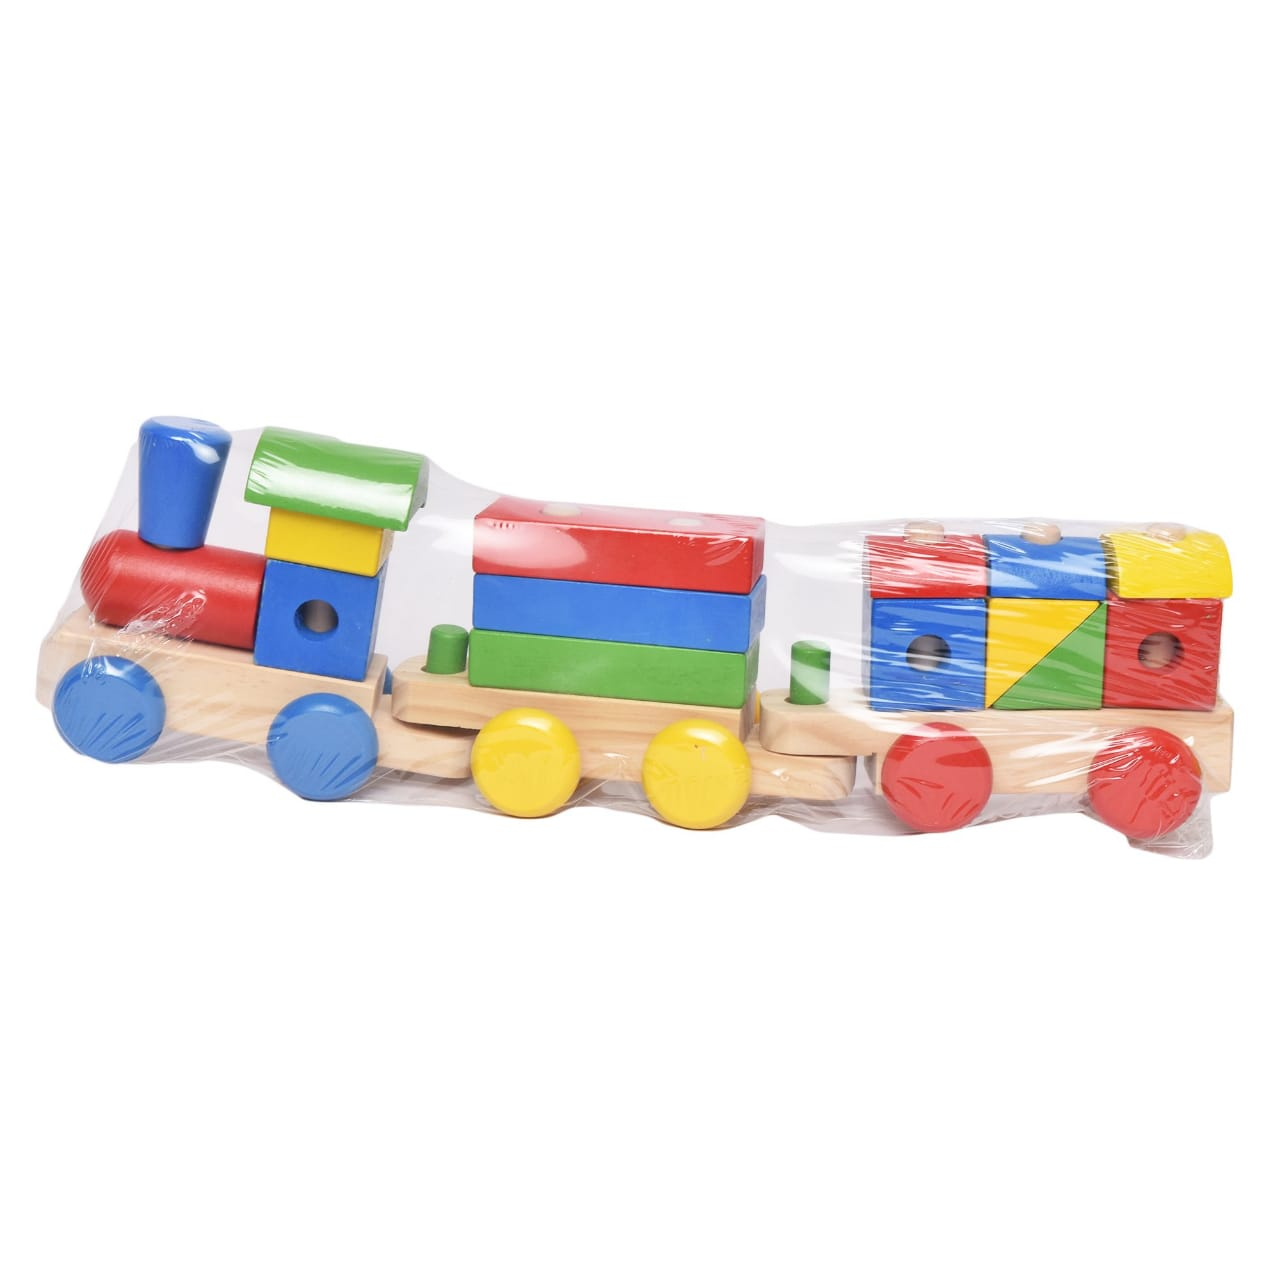 Wooden Shapes Train Toy